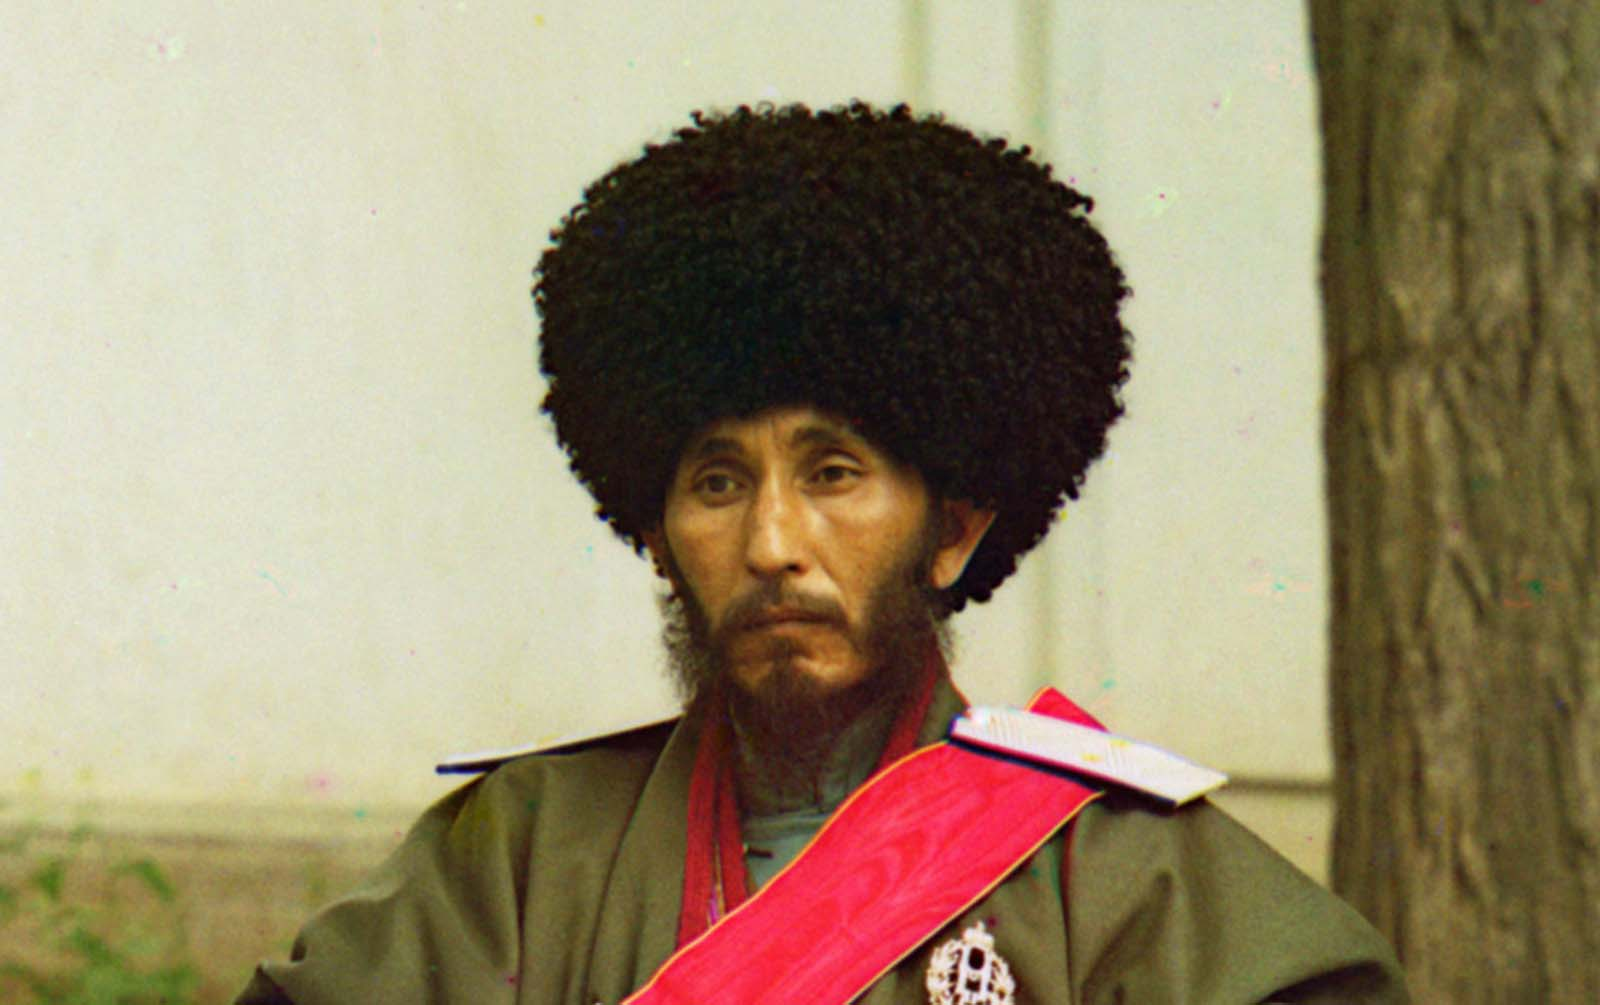 A closer detailed view of Isfandiyar, Khan of the Russian protectorate of Khorezm.